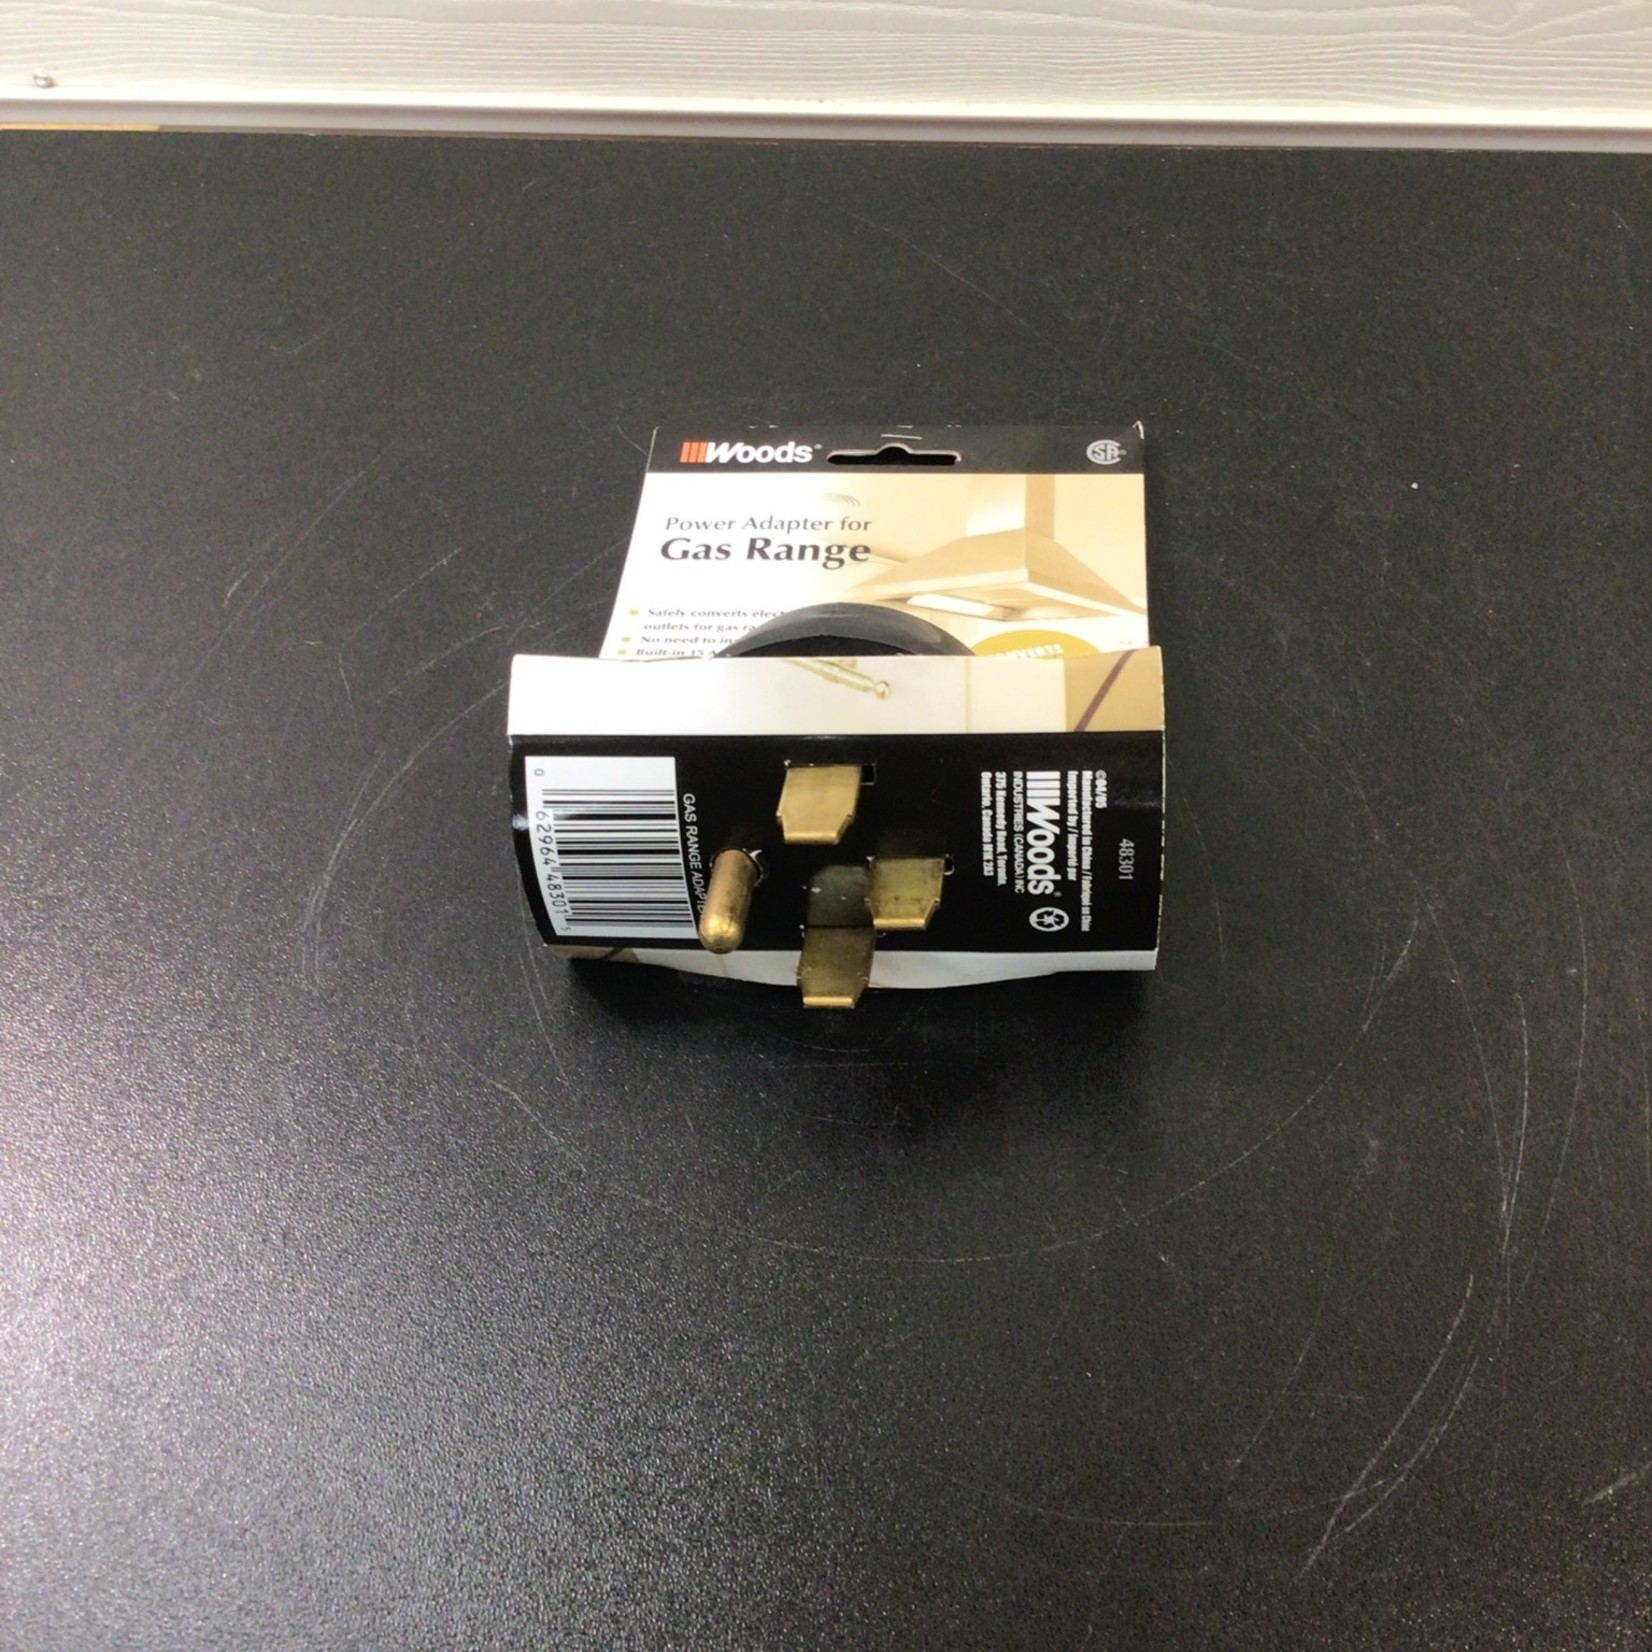 Power Adapter For Gas Range